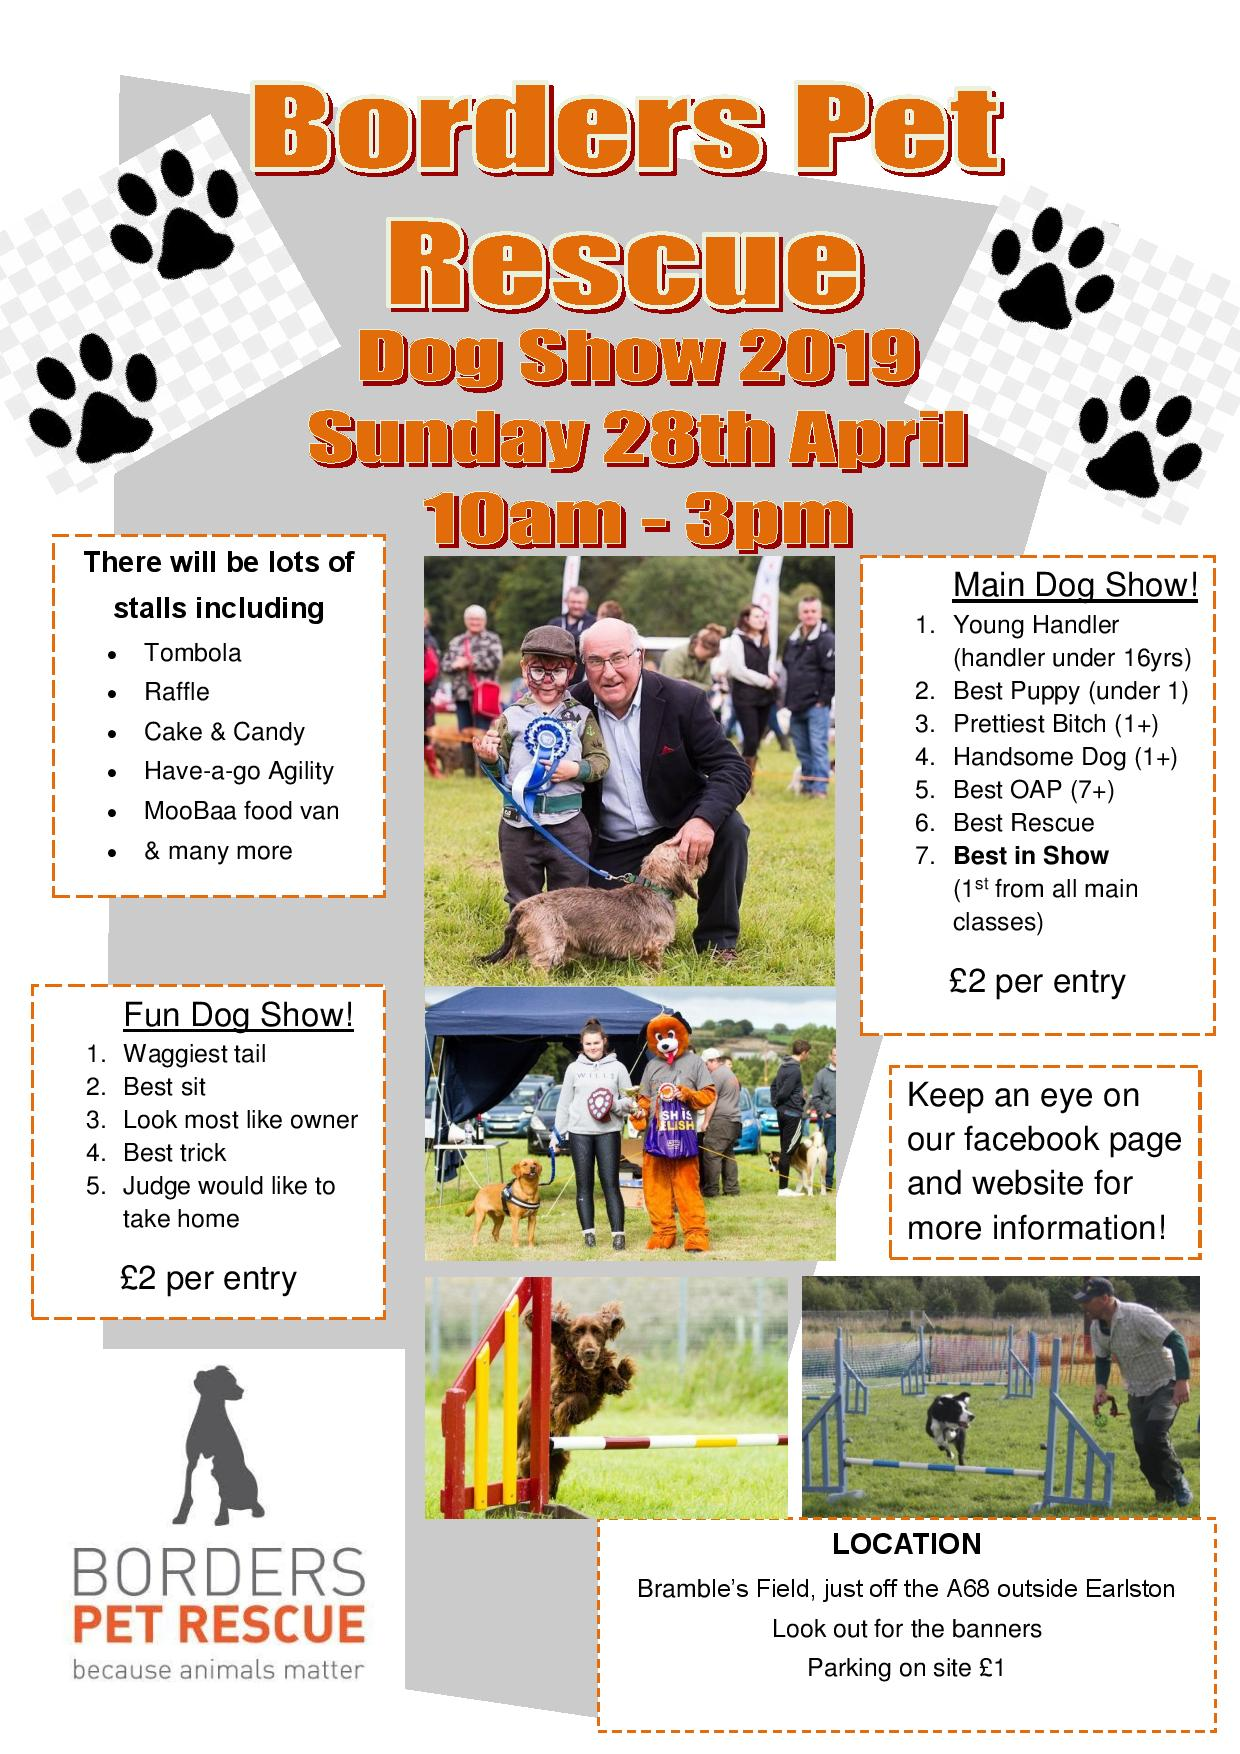 DOG SHOW first edition poster